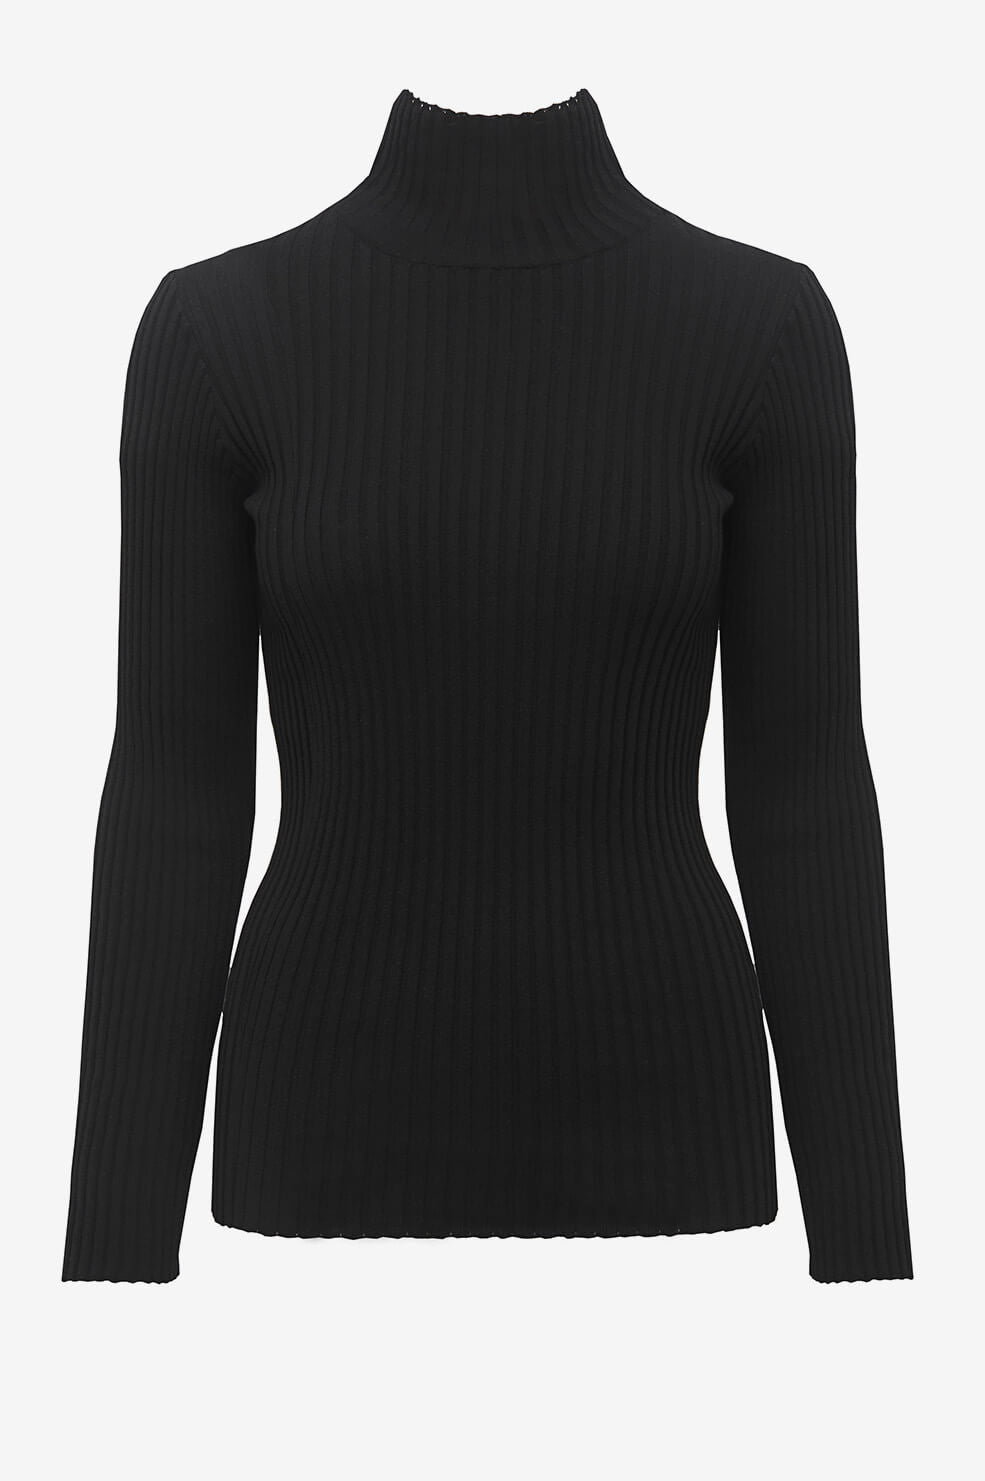 ANINE BING Clare Top - Black